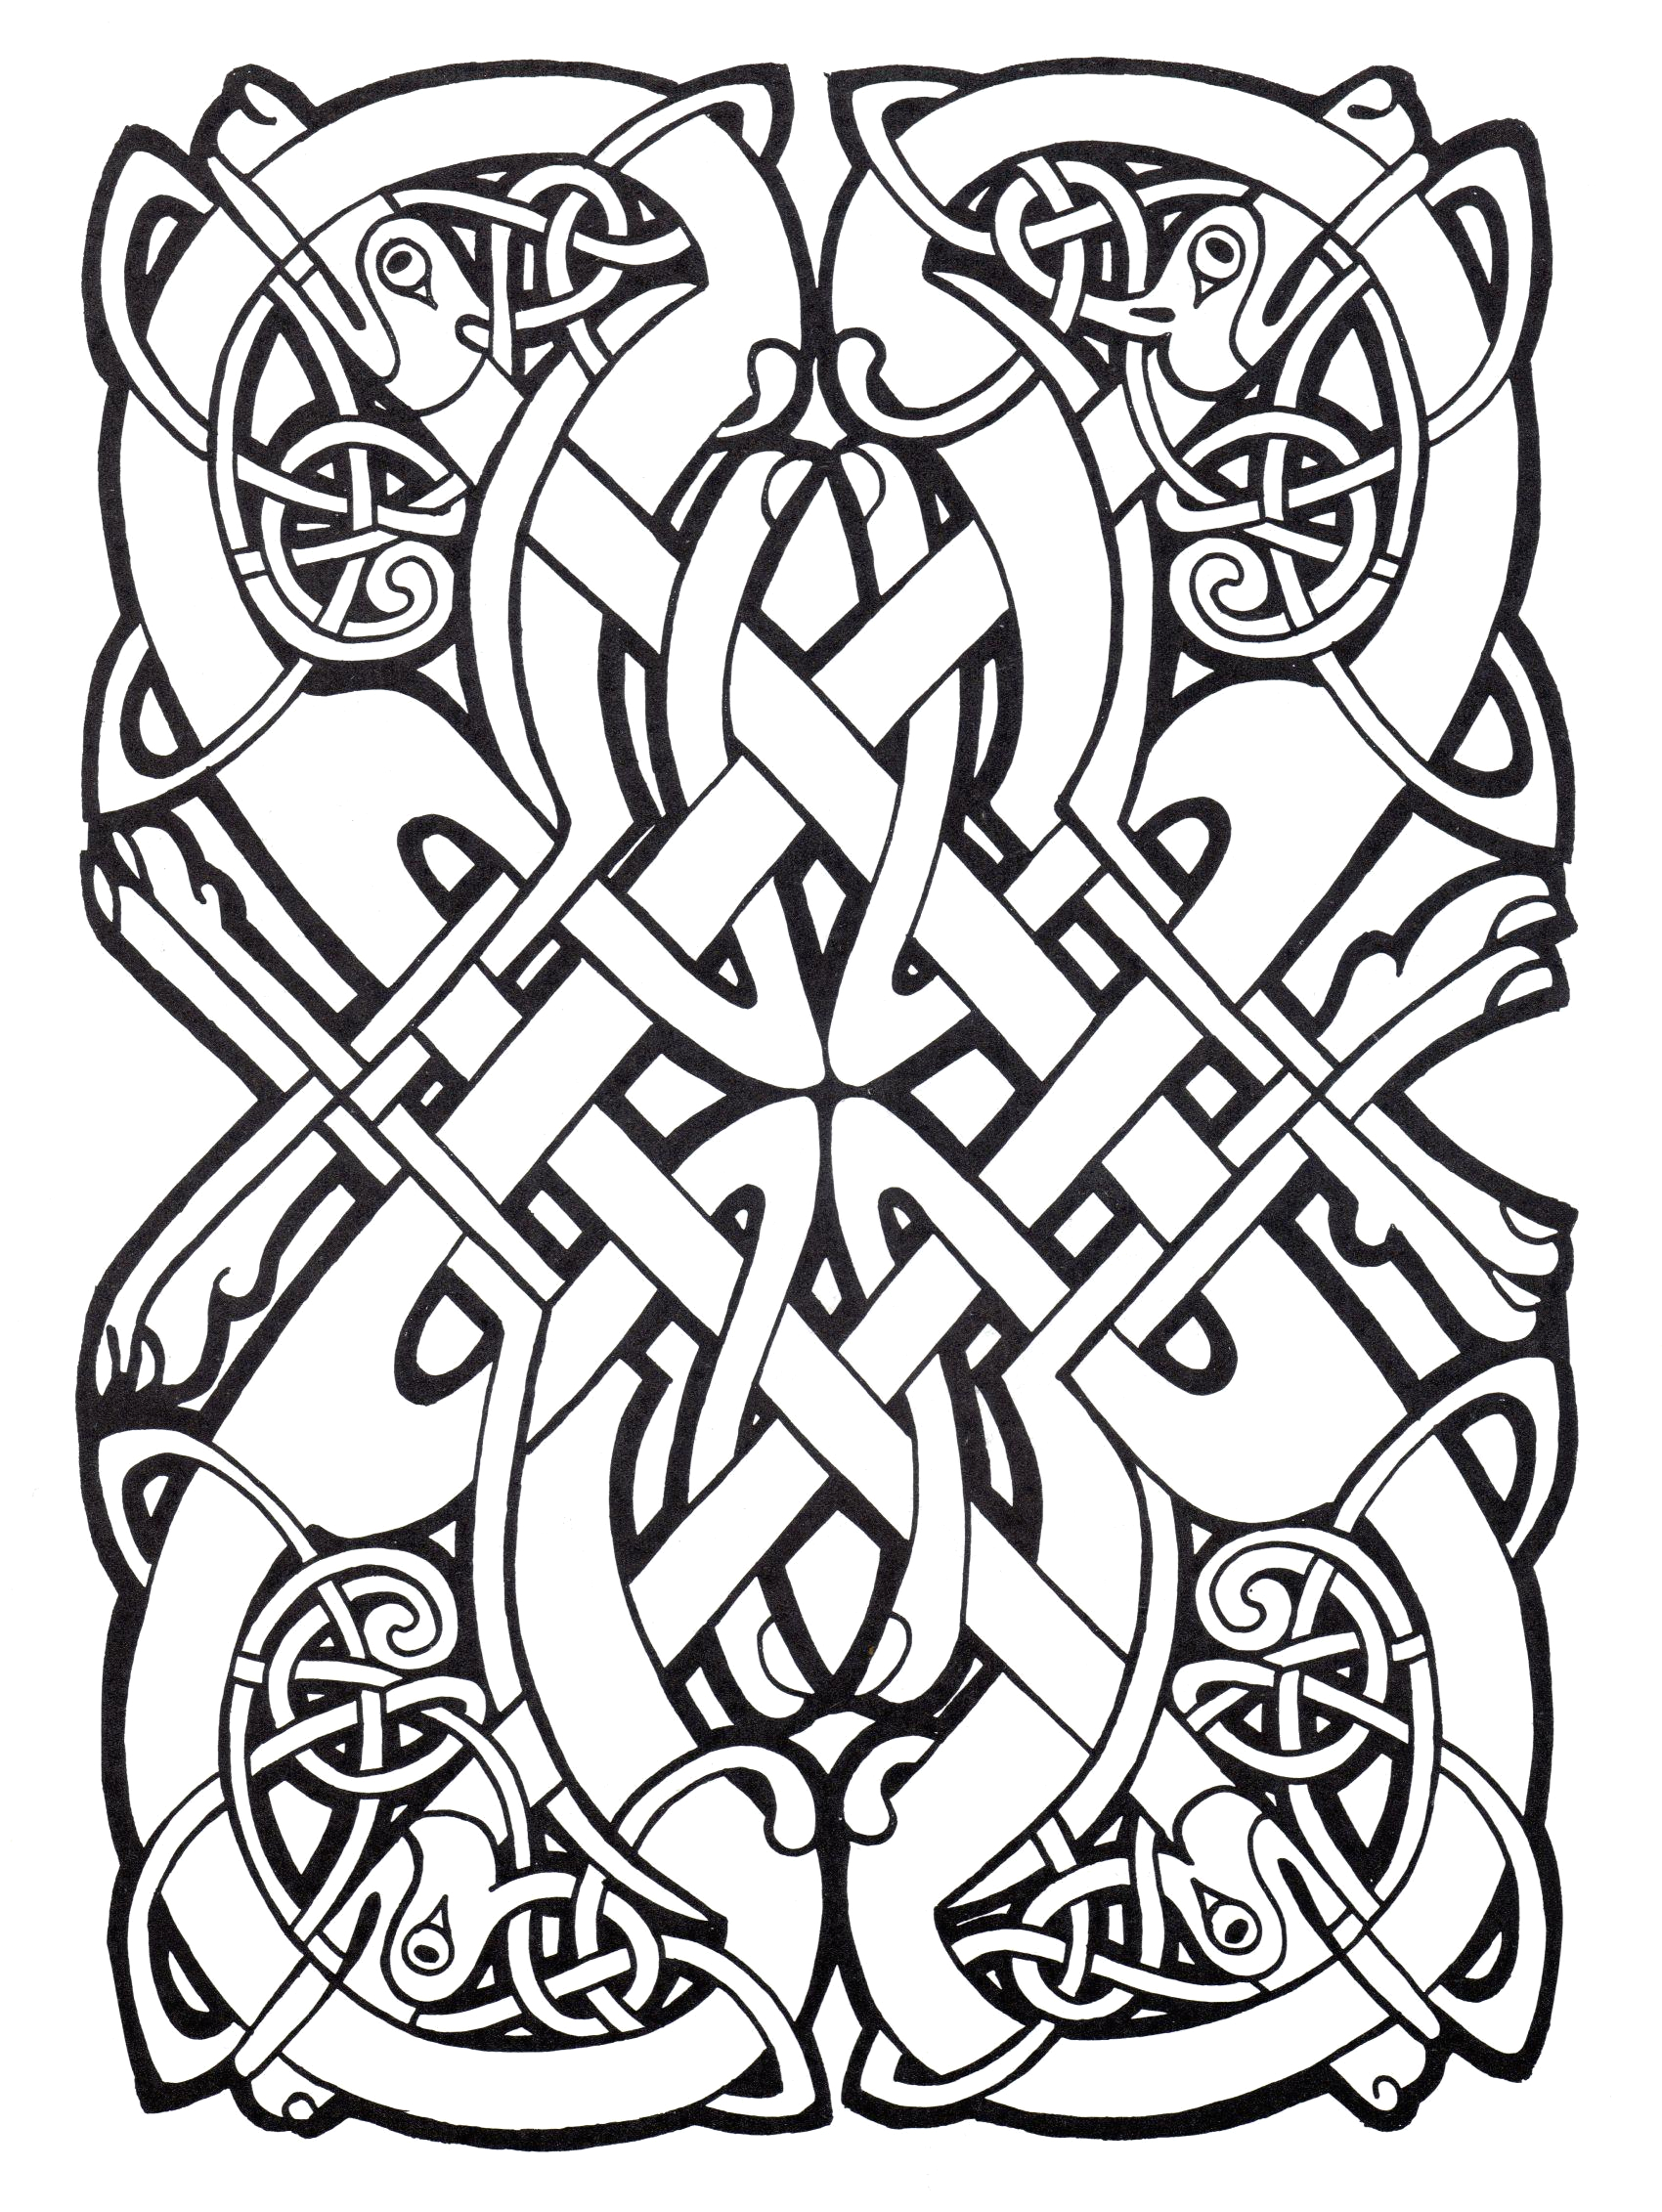 Free Printable Celtic Coloring Pages for Adults Celtic Coloring Pages Best Coloring Pages for Kids